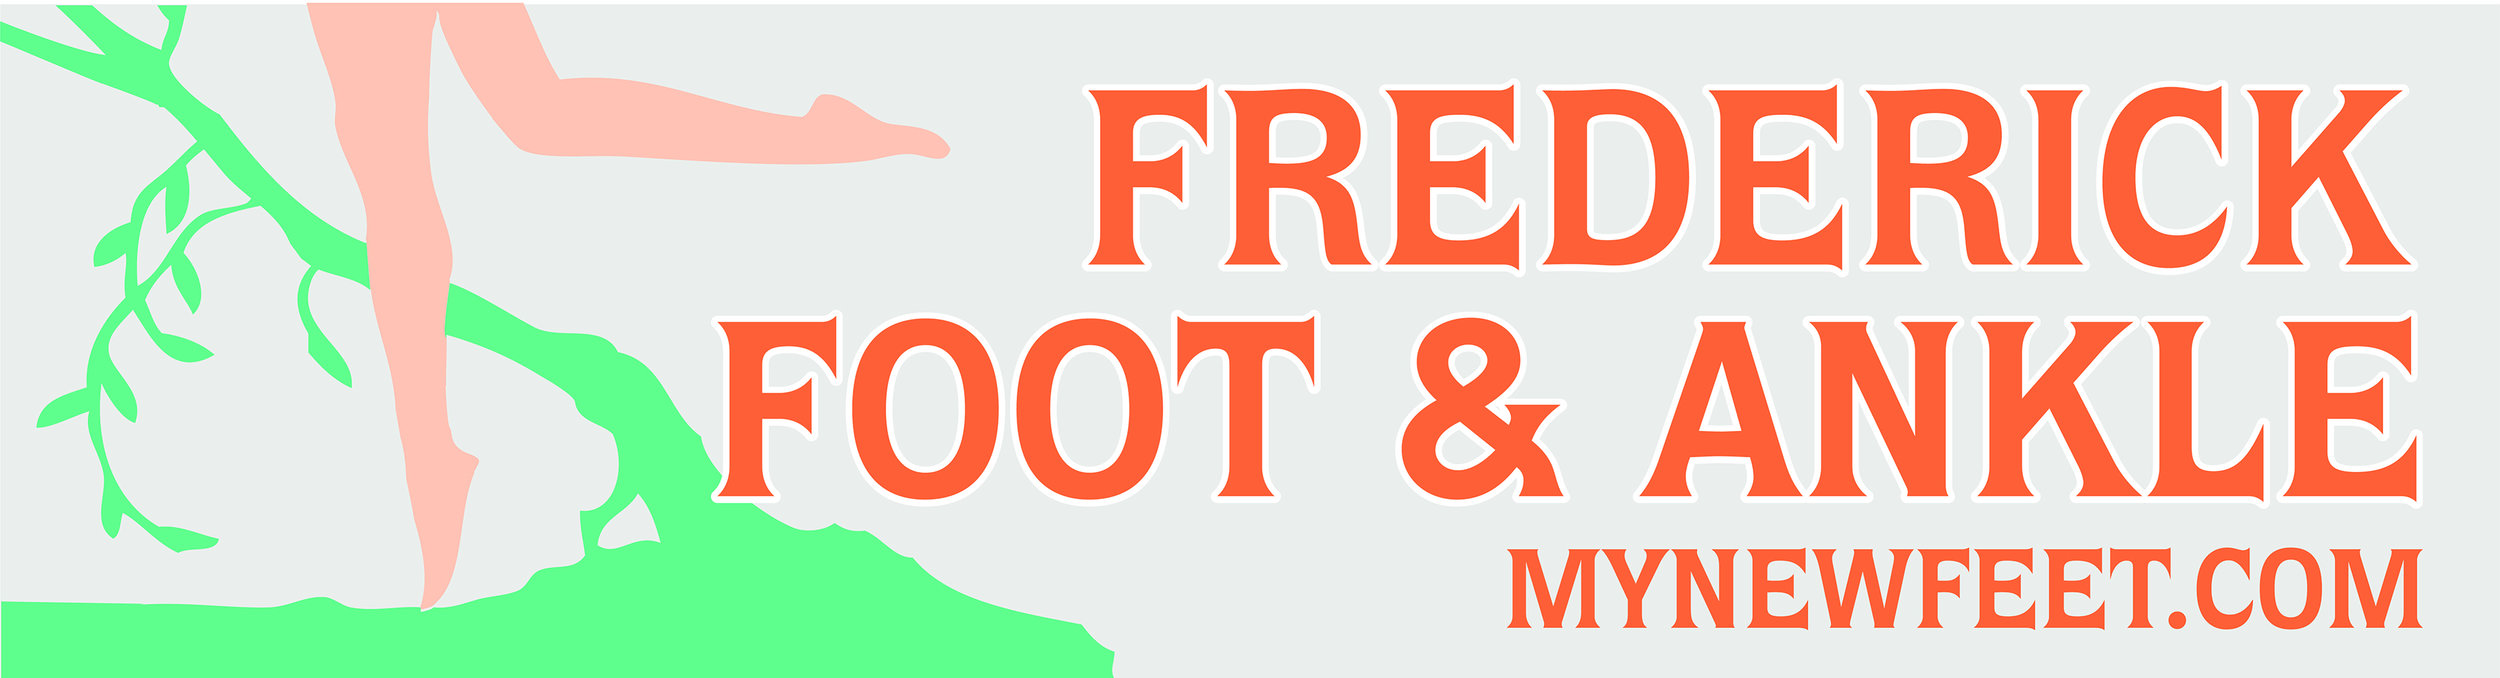 Frederick foot and ankle.jpg